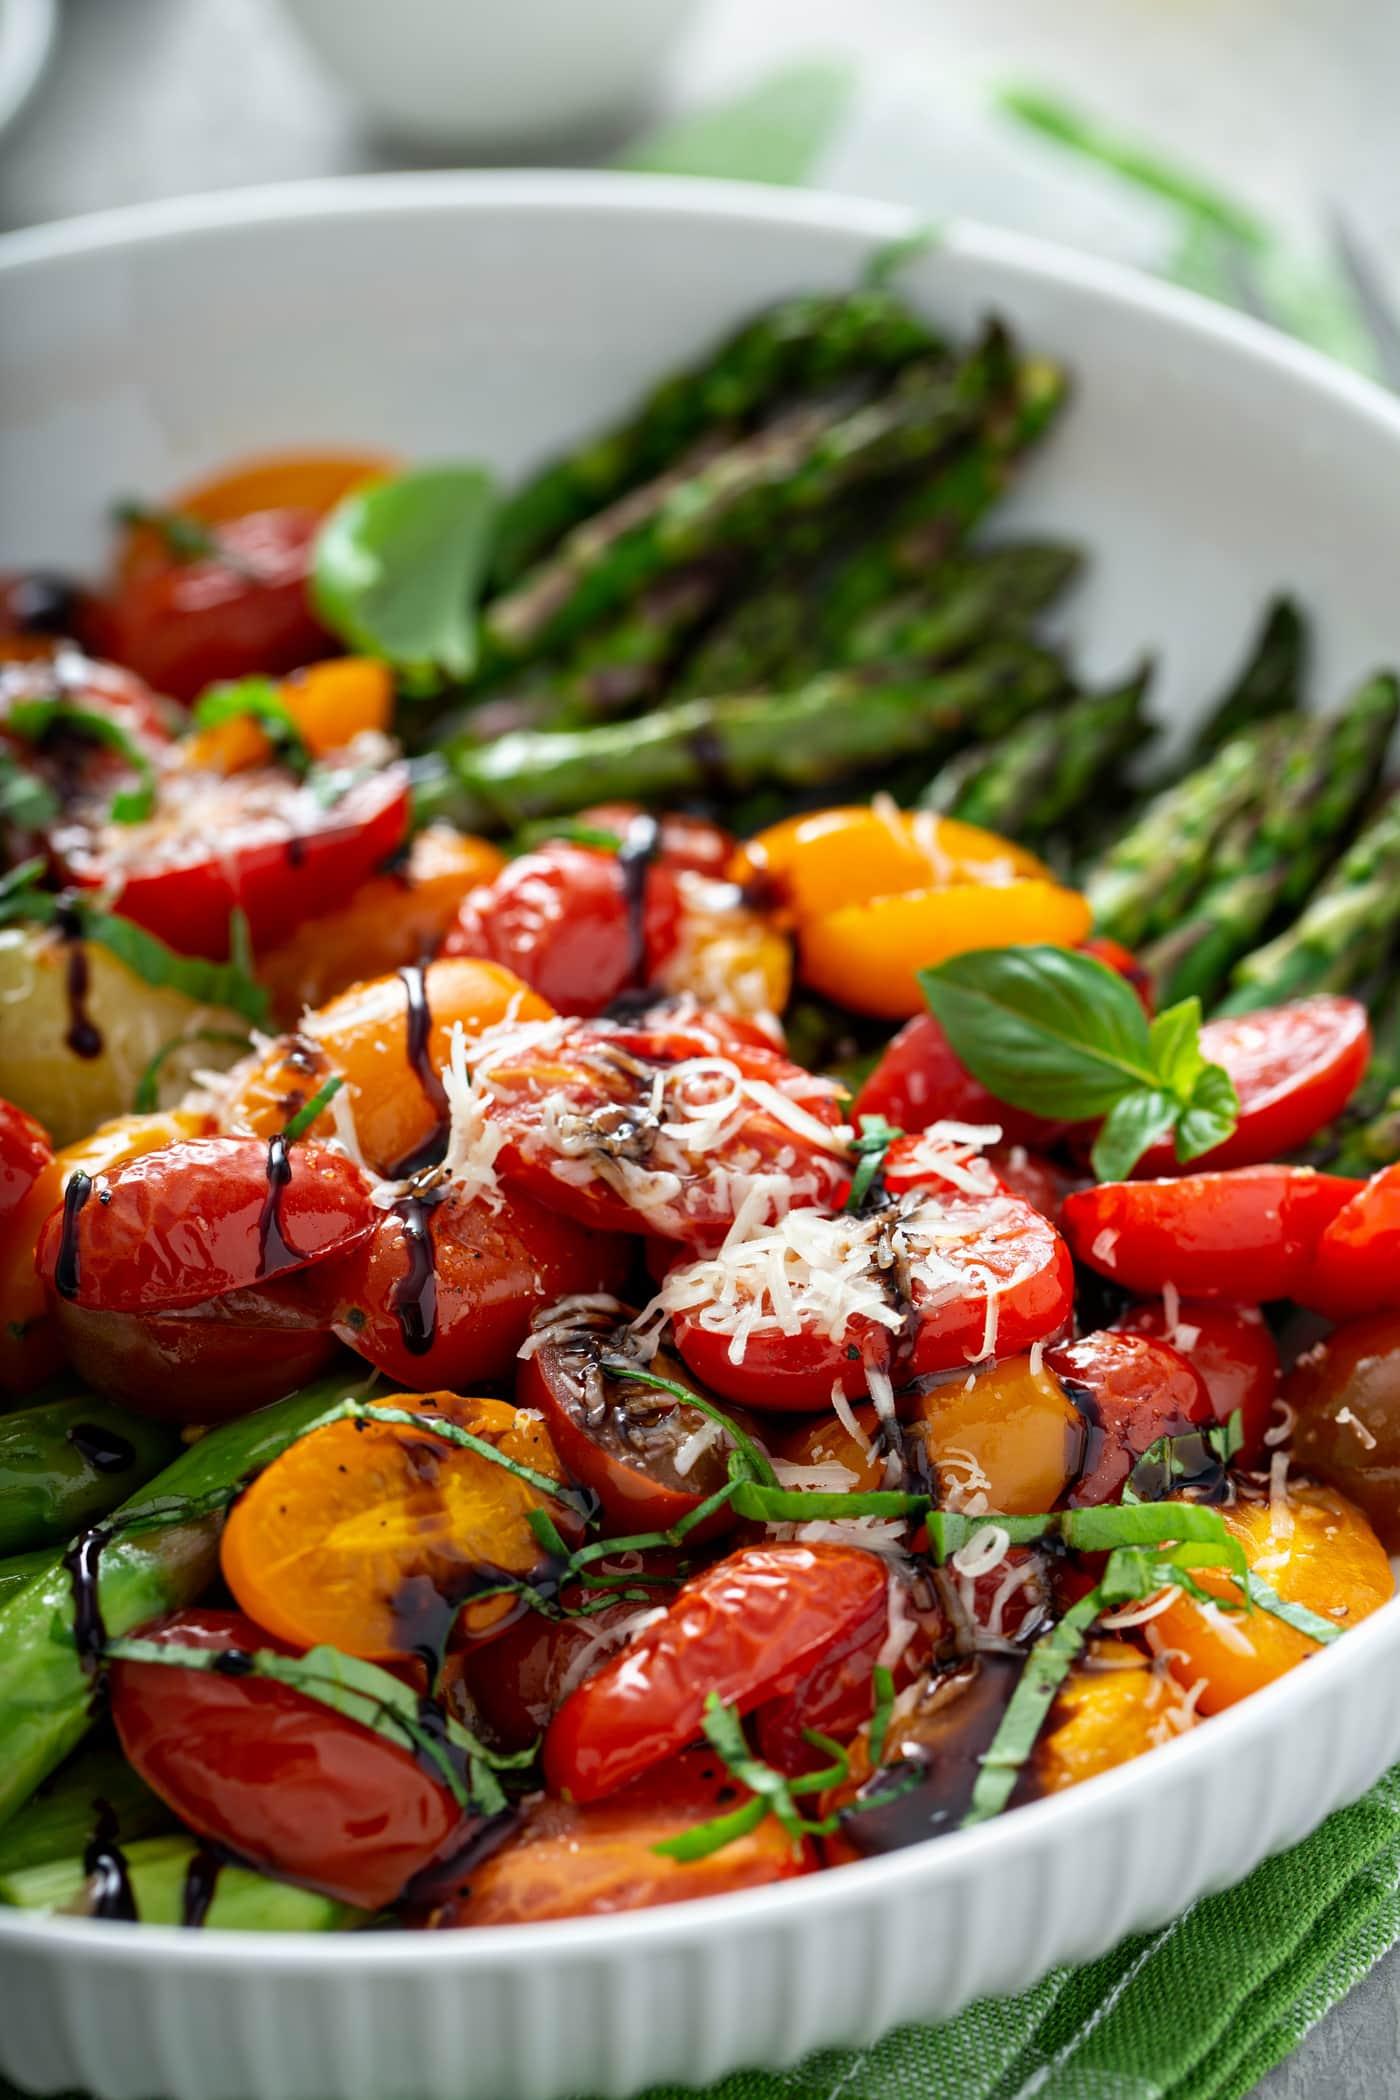 A close-up picture of balsamic glazed roasted tomatoes and asparagus. The bright green asparagus and sliced red and yellow tomatoes are drizzled with balsamic glaze and topped with grated Parmesan cheese.